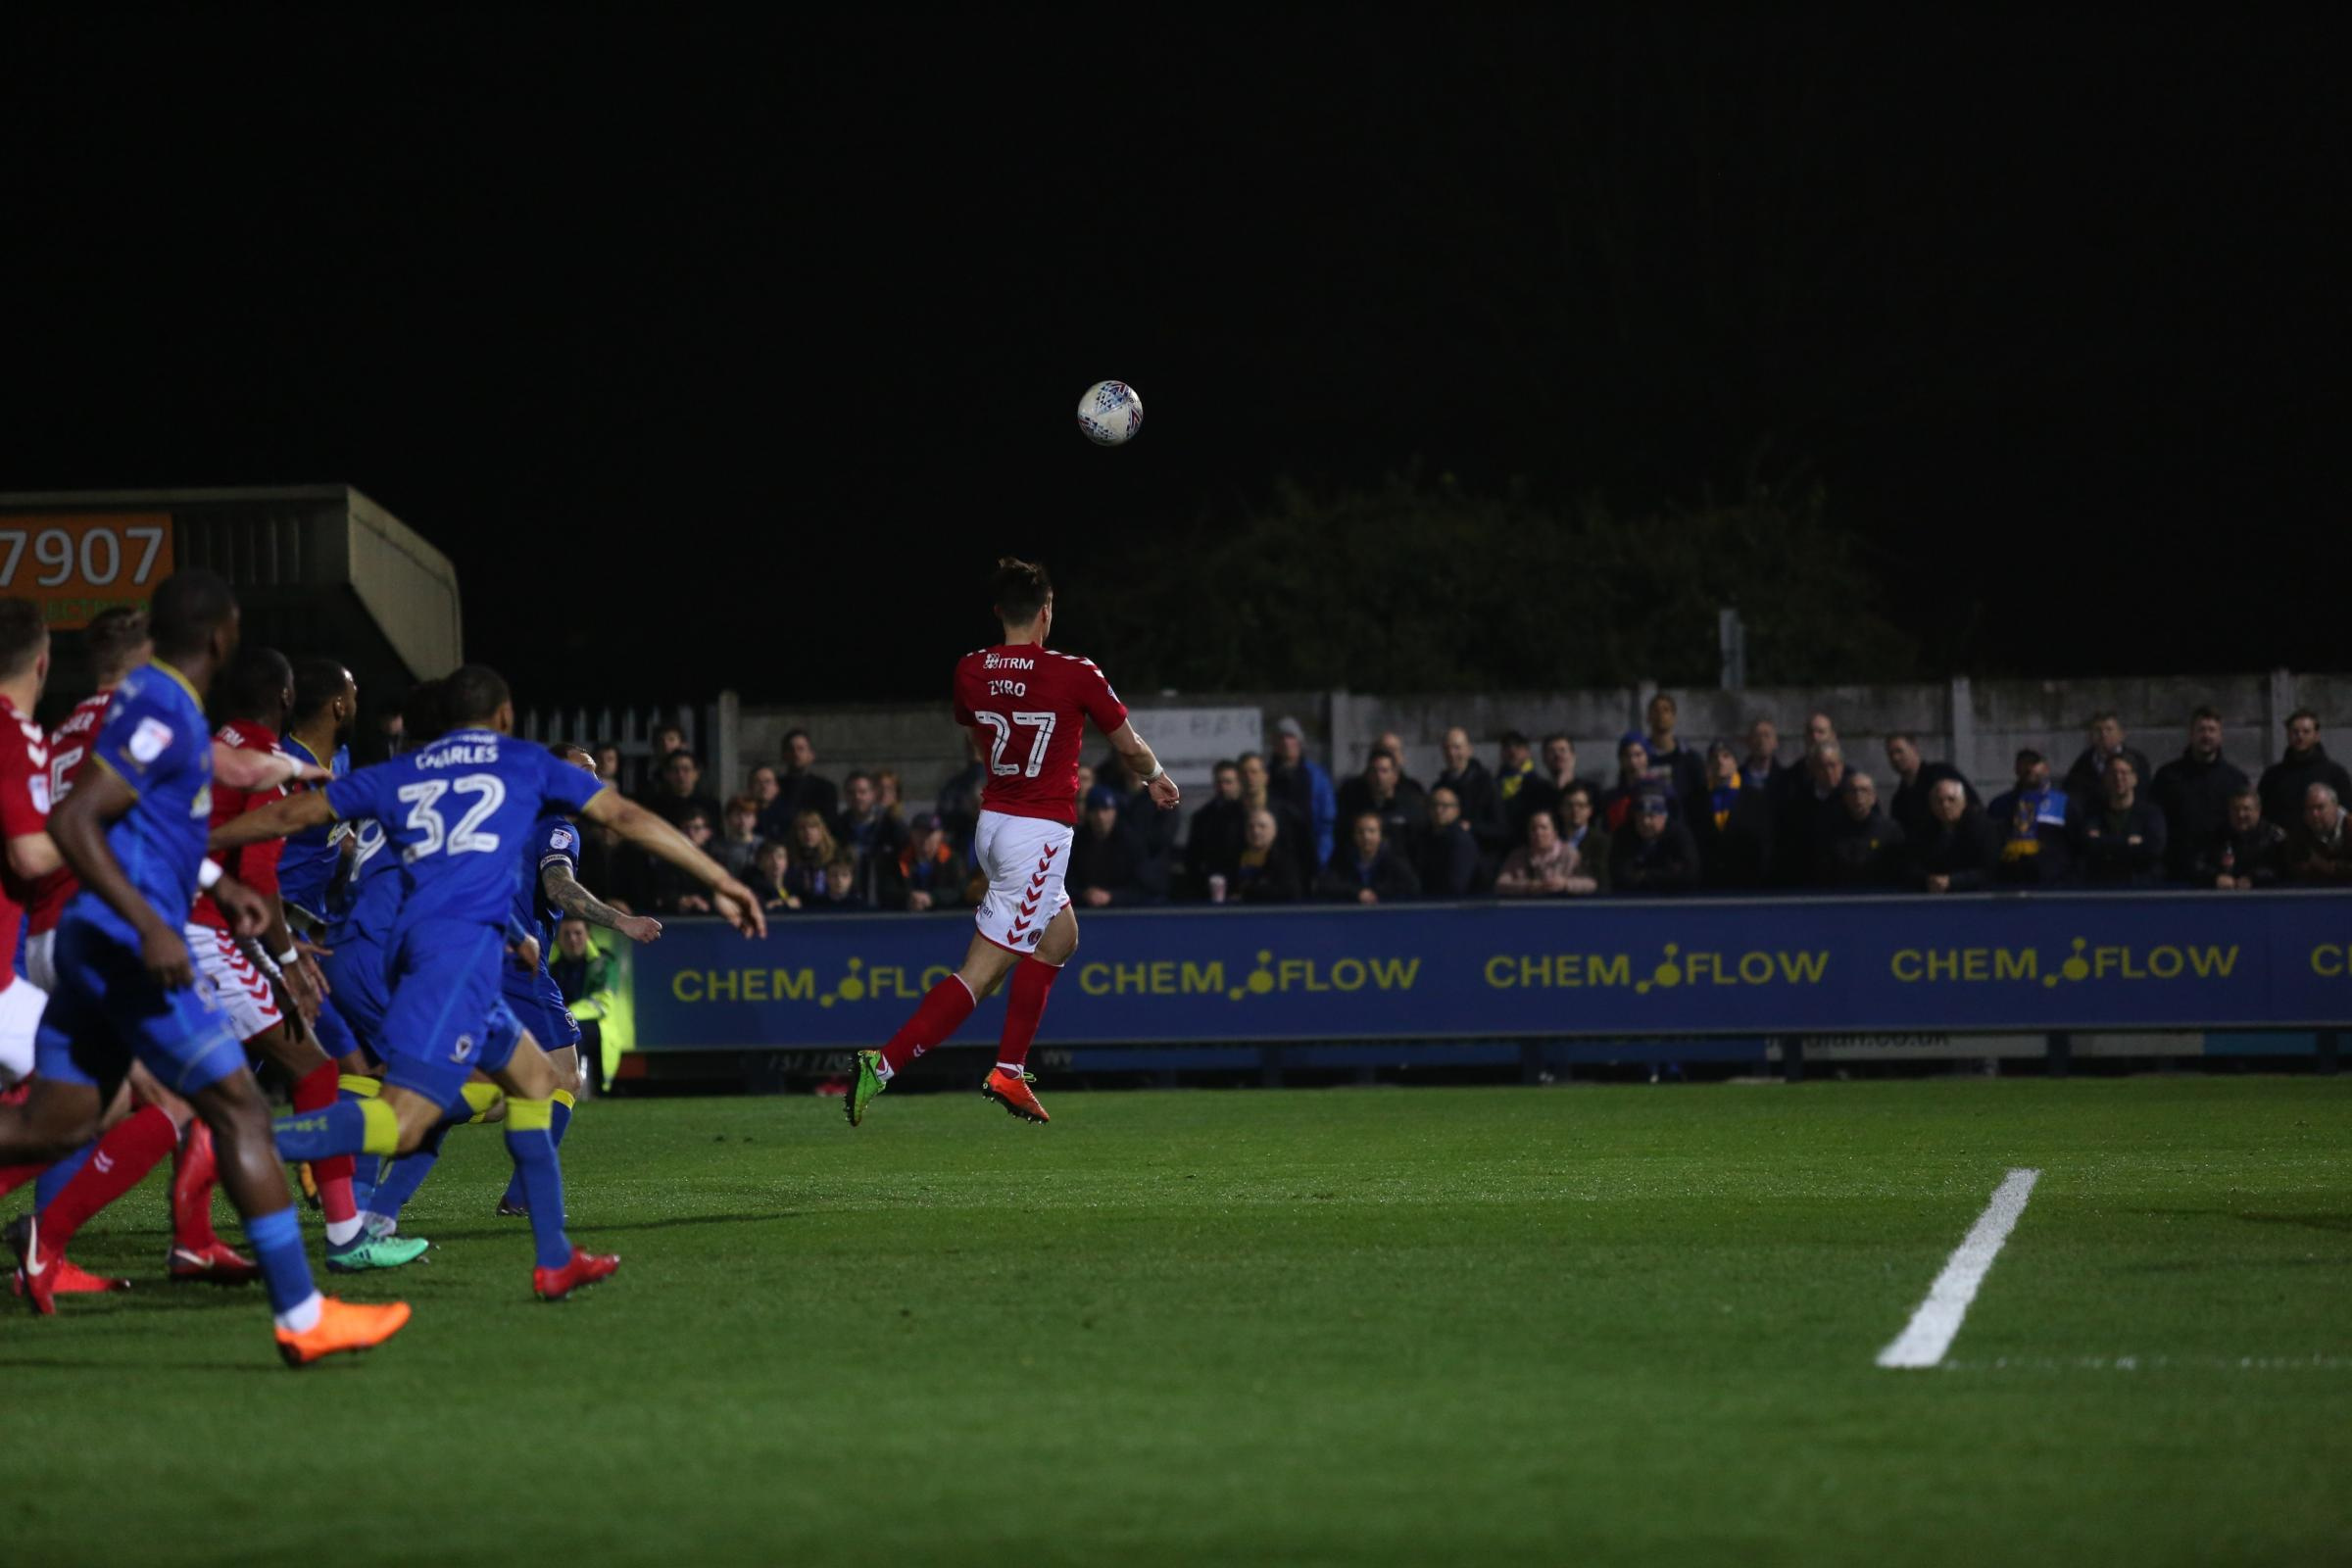 Charlton's Michal Zyro goes up for a header. Photo: Tom West Photography